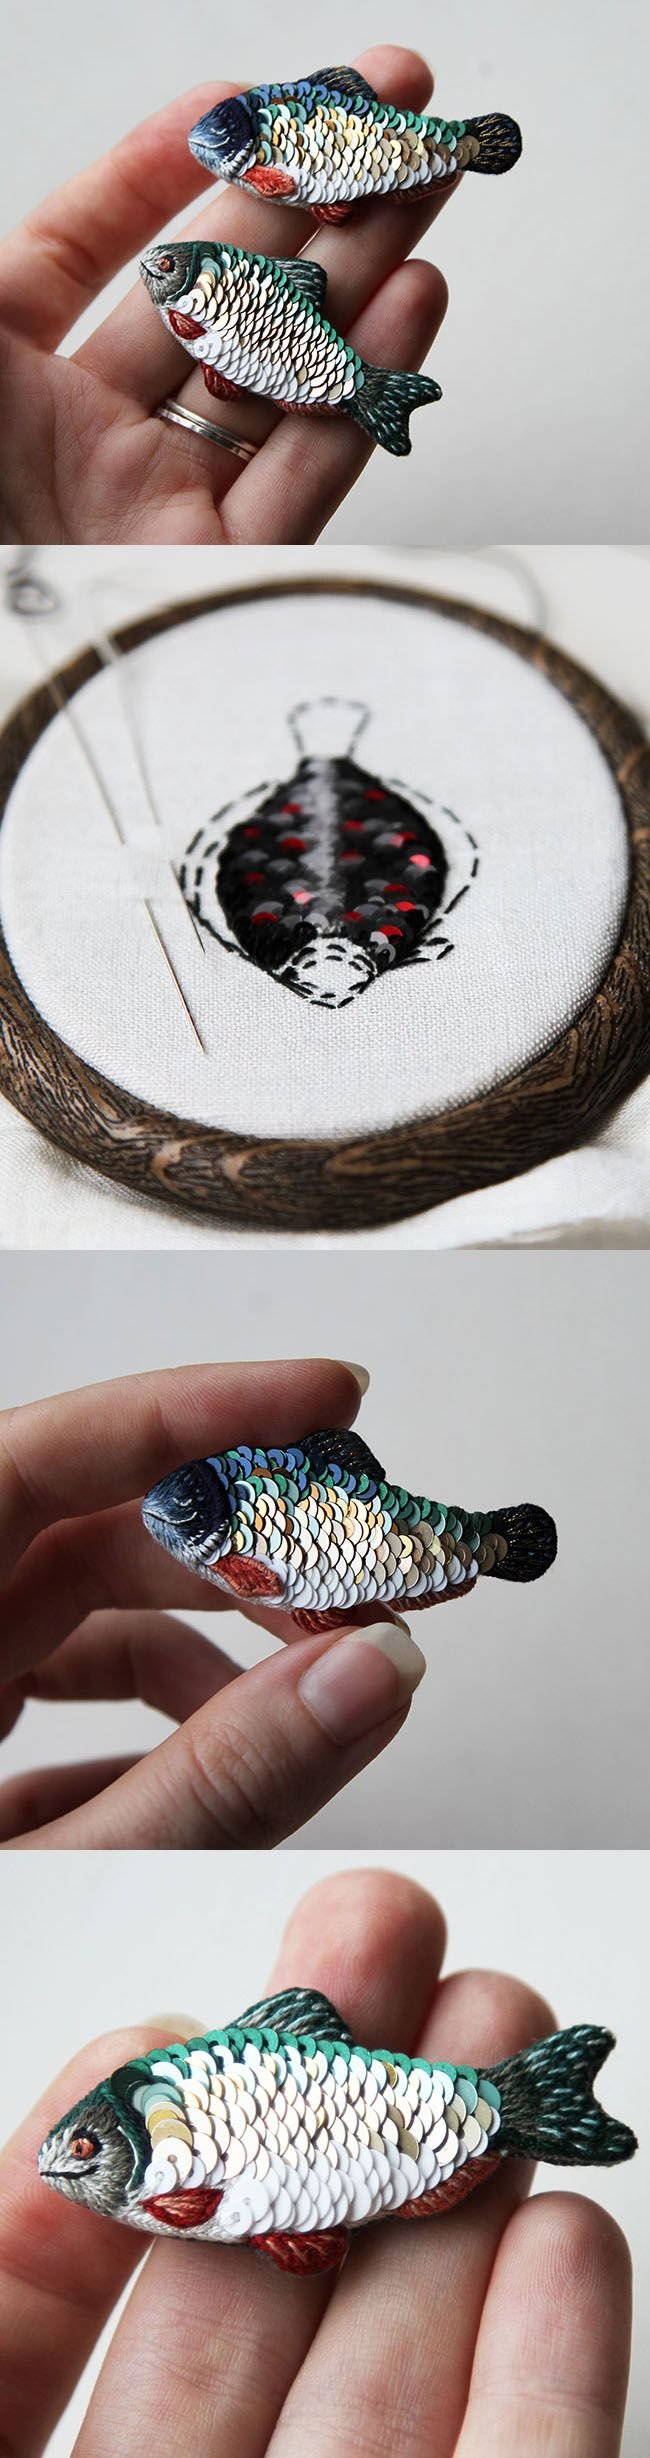 Today, I want to introduce you to Svetlana the mastermind behind the miniature embroidery pieces of Eira Teufel. Svetlana lives in Saint Petersburg, Russia, and was kind enough to answer my questions about her work. She embroiders he tiniest animal portraits on little necklaces and t-shirts and makes the cutes shiny fish brooches.   Hi, Svetlana, I'm so glad to have you here! Could you give a short introduction so my readers know who you are? This is the question that always irritates me…